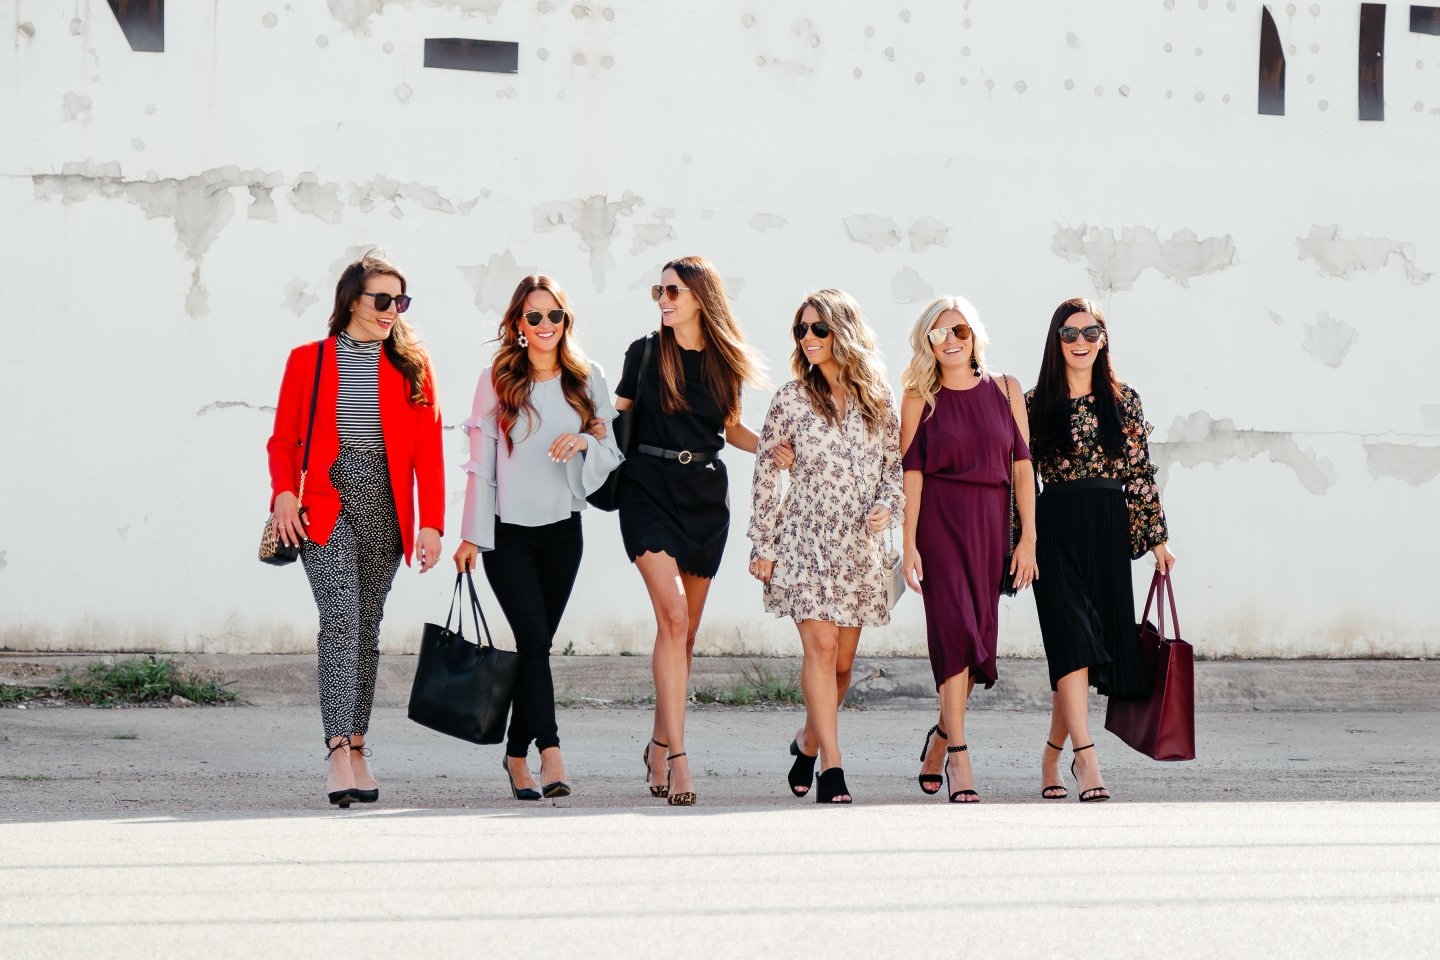 6 outfit ideas what to wear to work